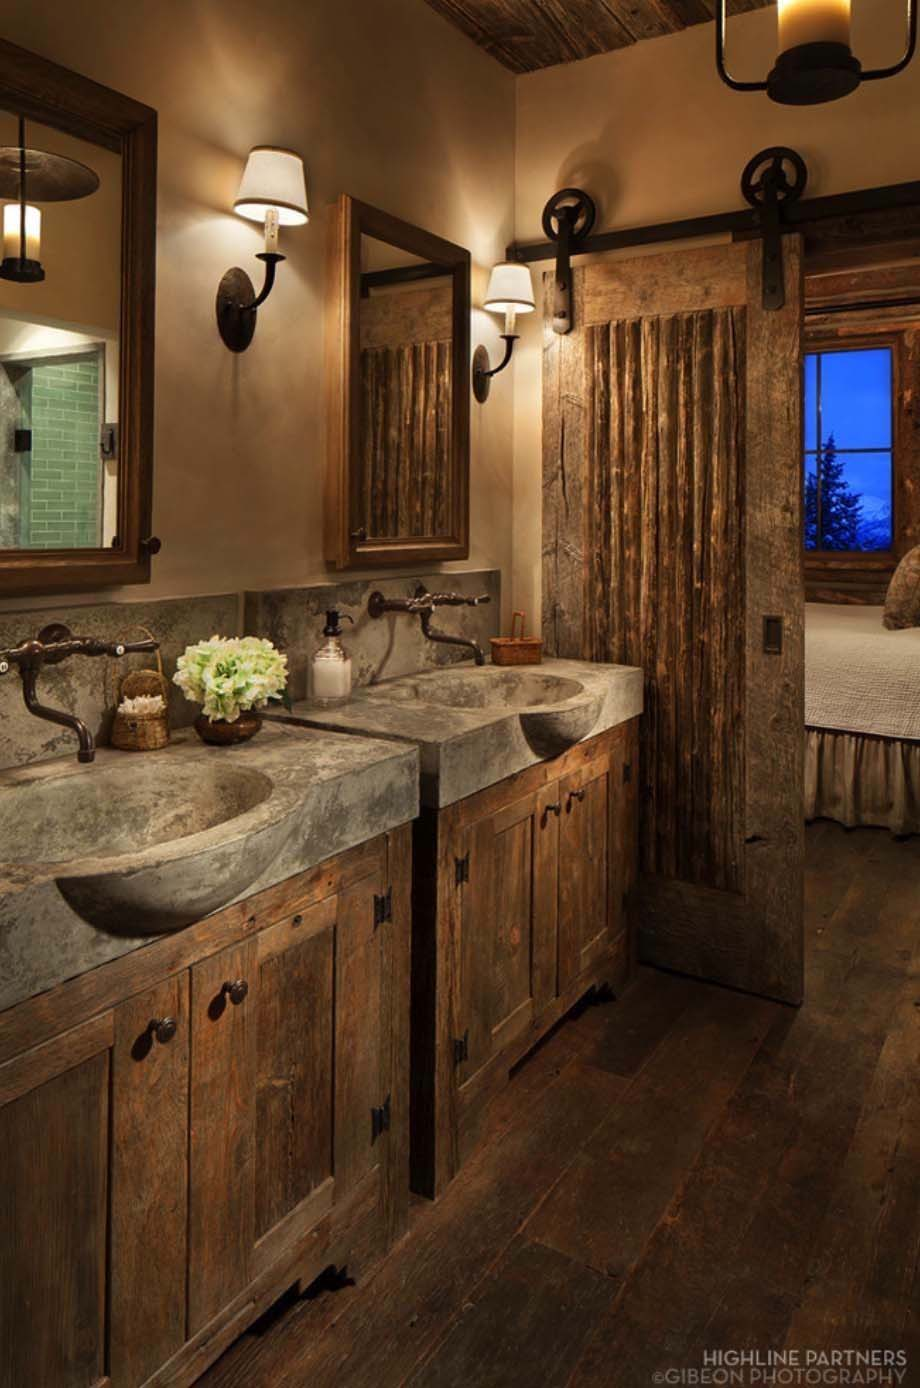 17 inspiring rustic bathroom decor ideas for cozy home for Bathroom remodel ideas